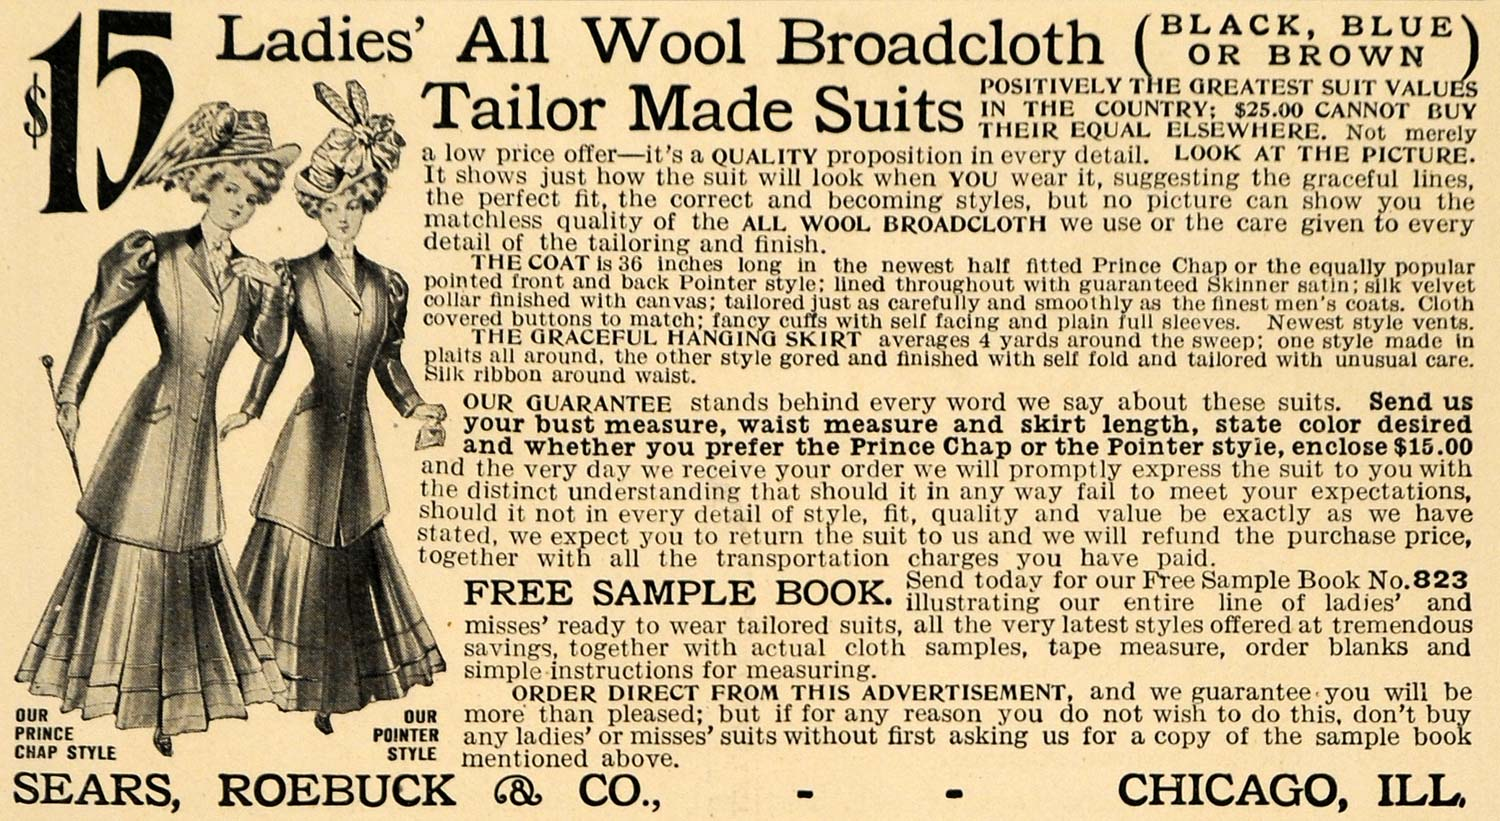 1908 Ad Wool Broadcloth Tailor Made Suits Women Sears - ORIGINAL ADVERTISING TW1